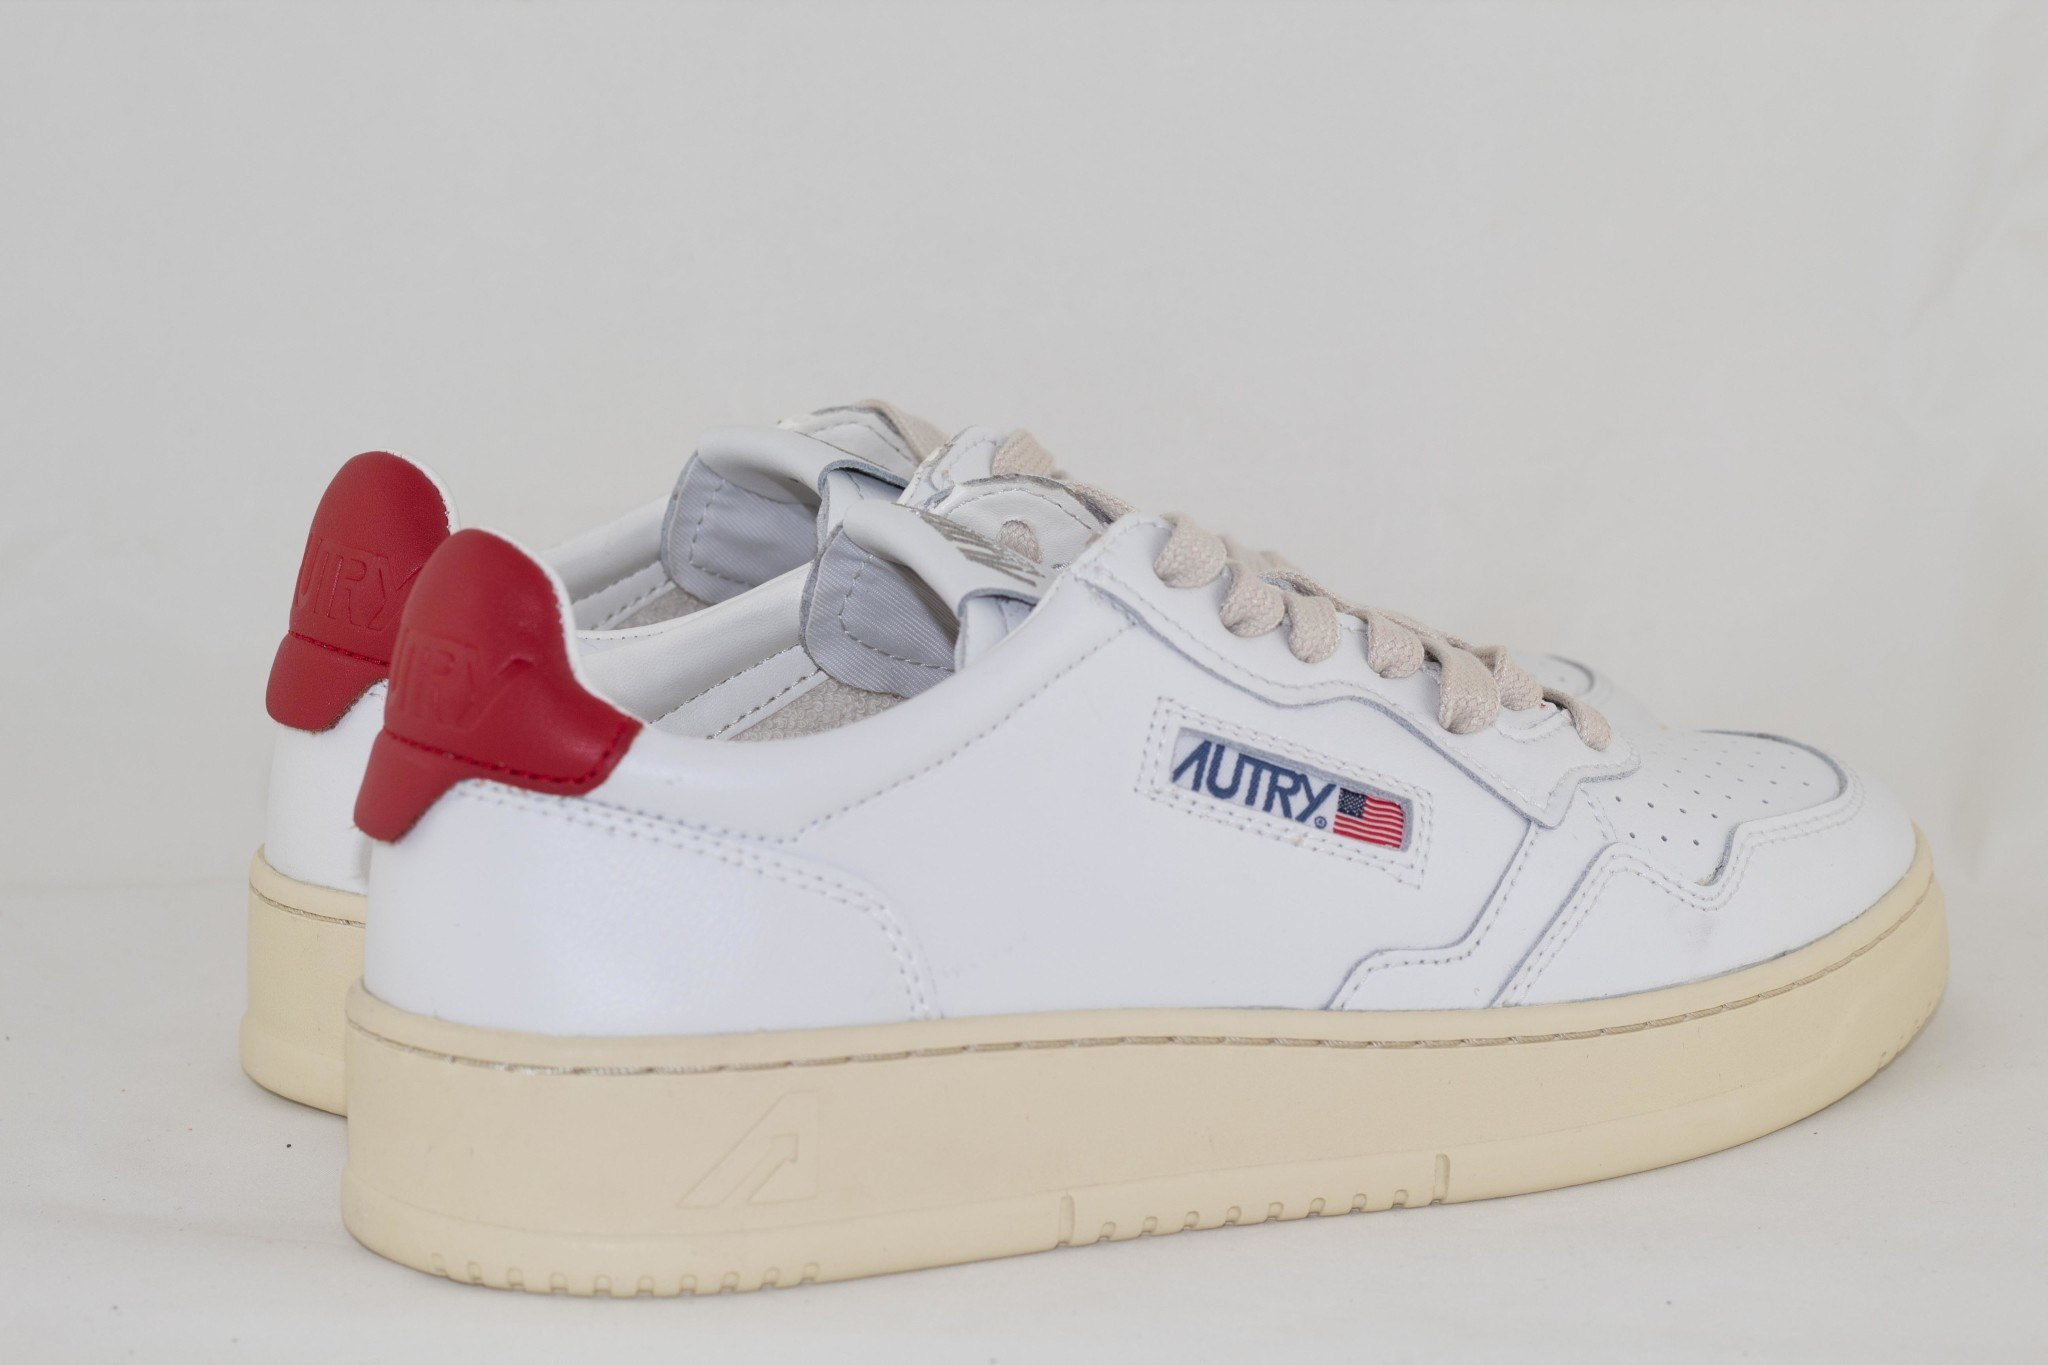 Autry LOW MAN ALL LEAT White/ Red